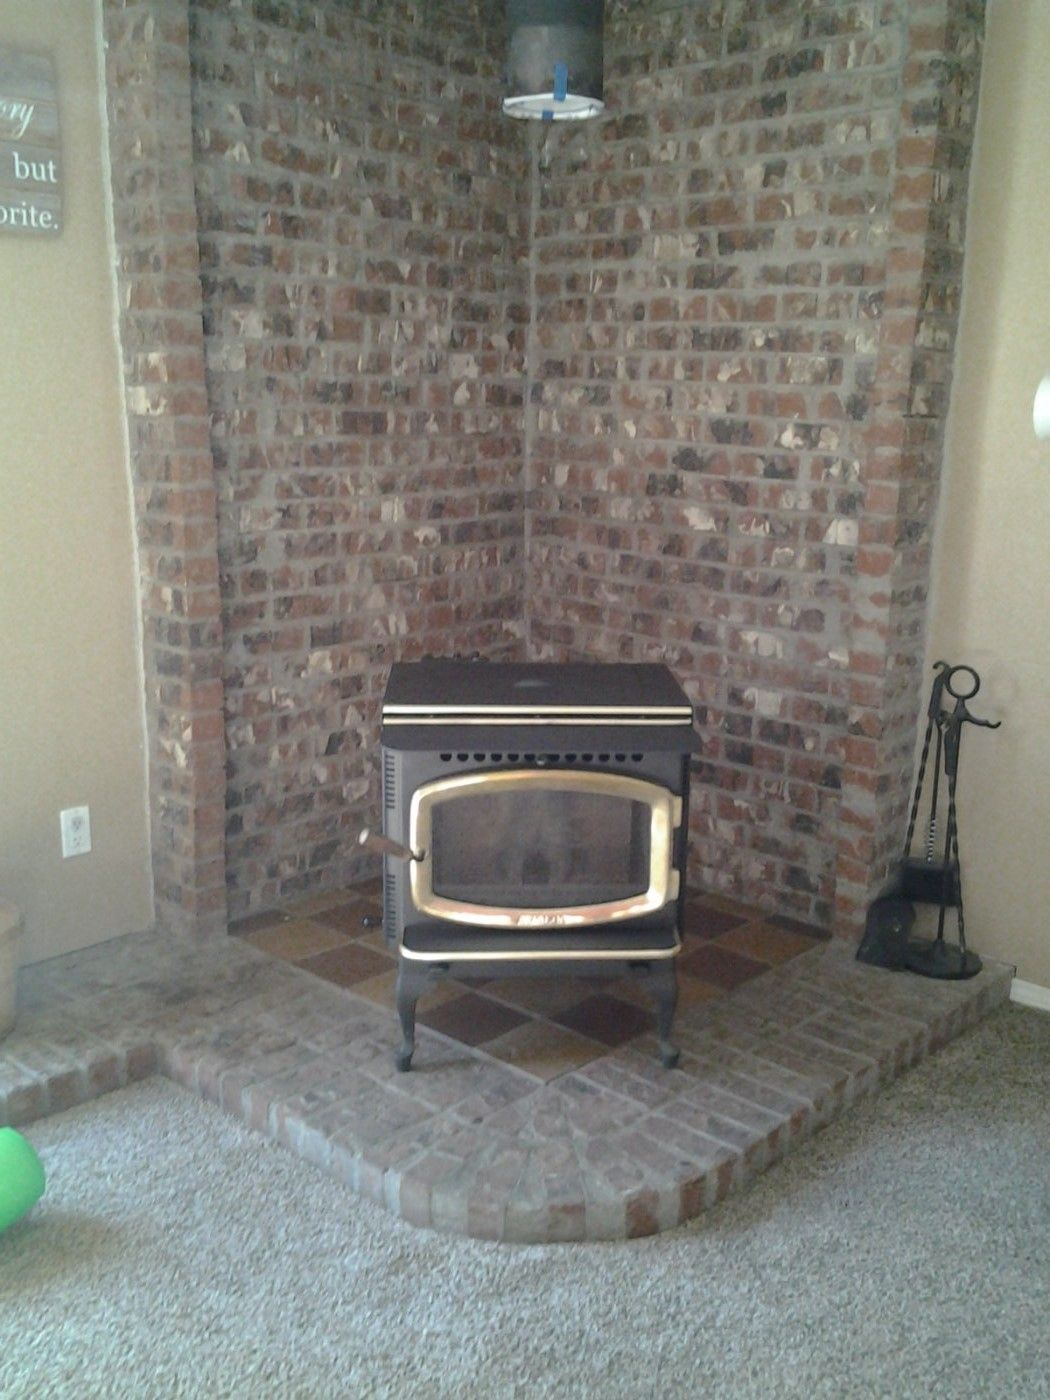 New To Me Avalon Pellet Stove Sitting In Place Hearth